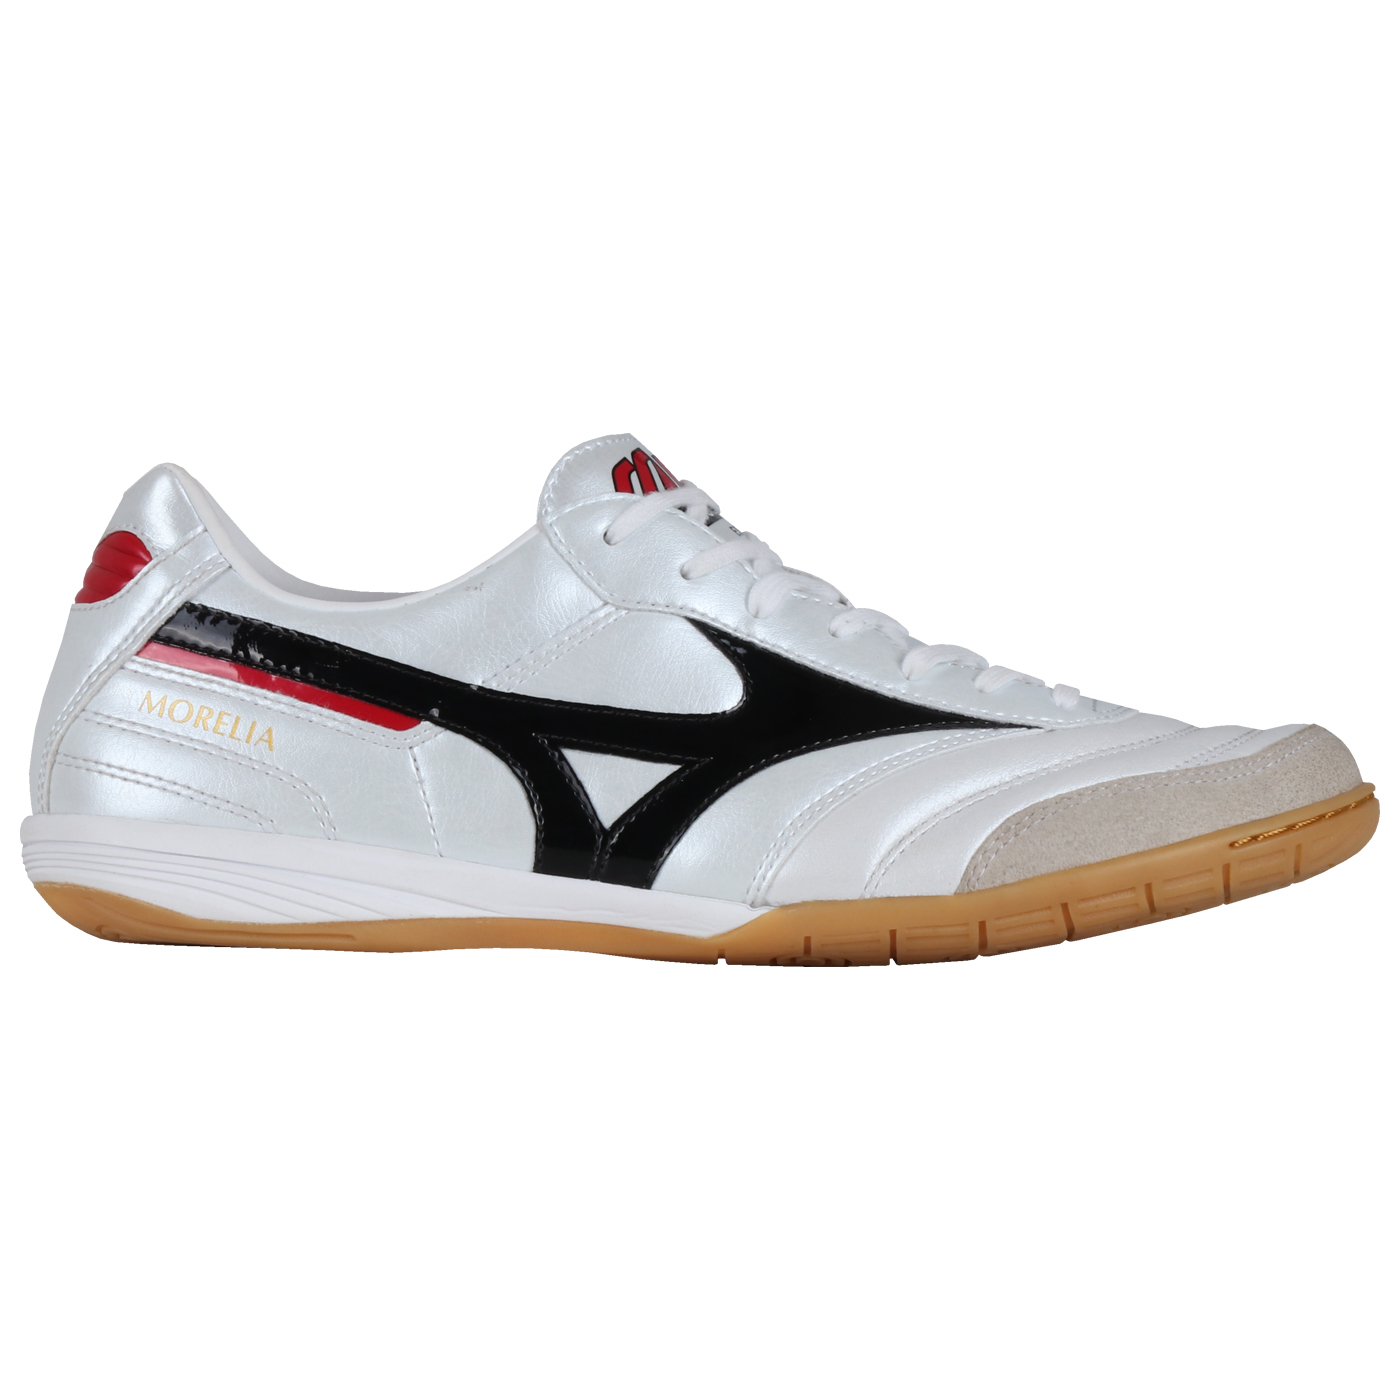 MORELIA IN - WHITE/BLACK/CHINESE RED